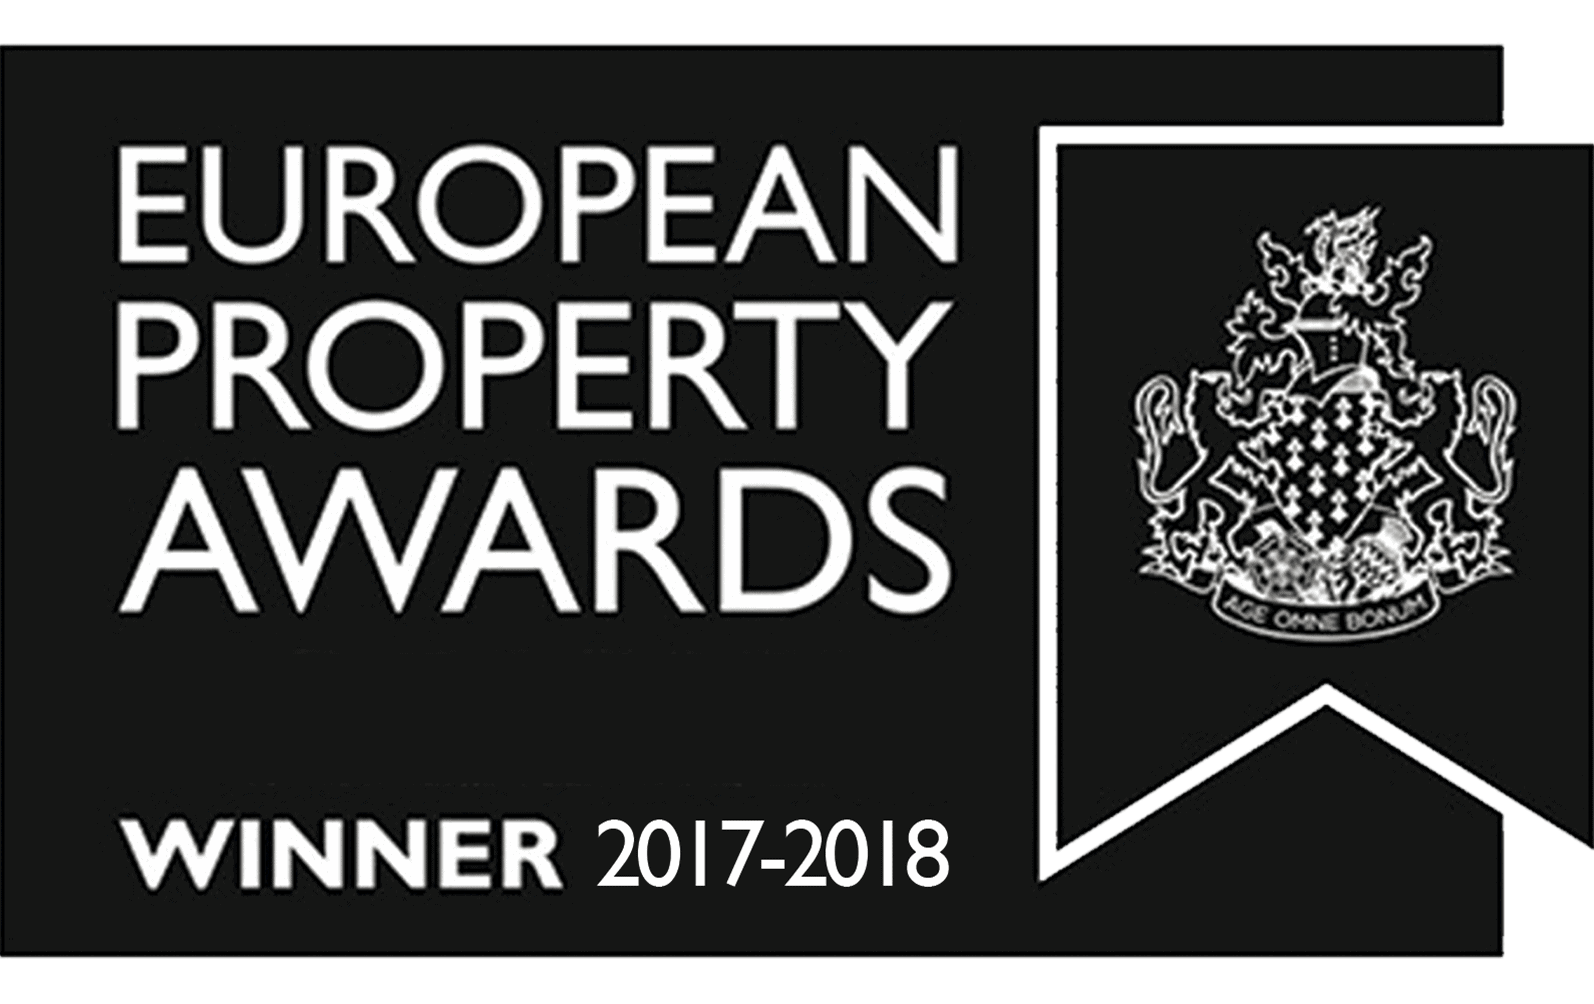 European Property Awards 2017-2018